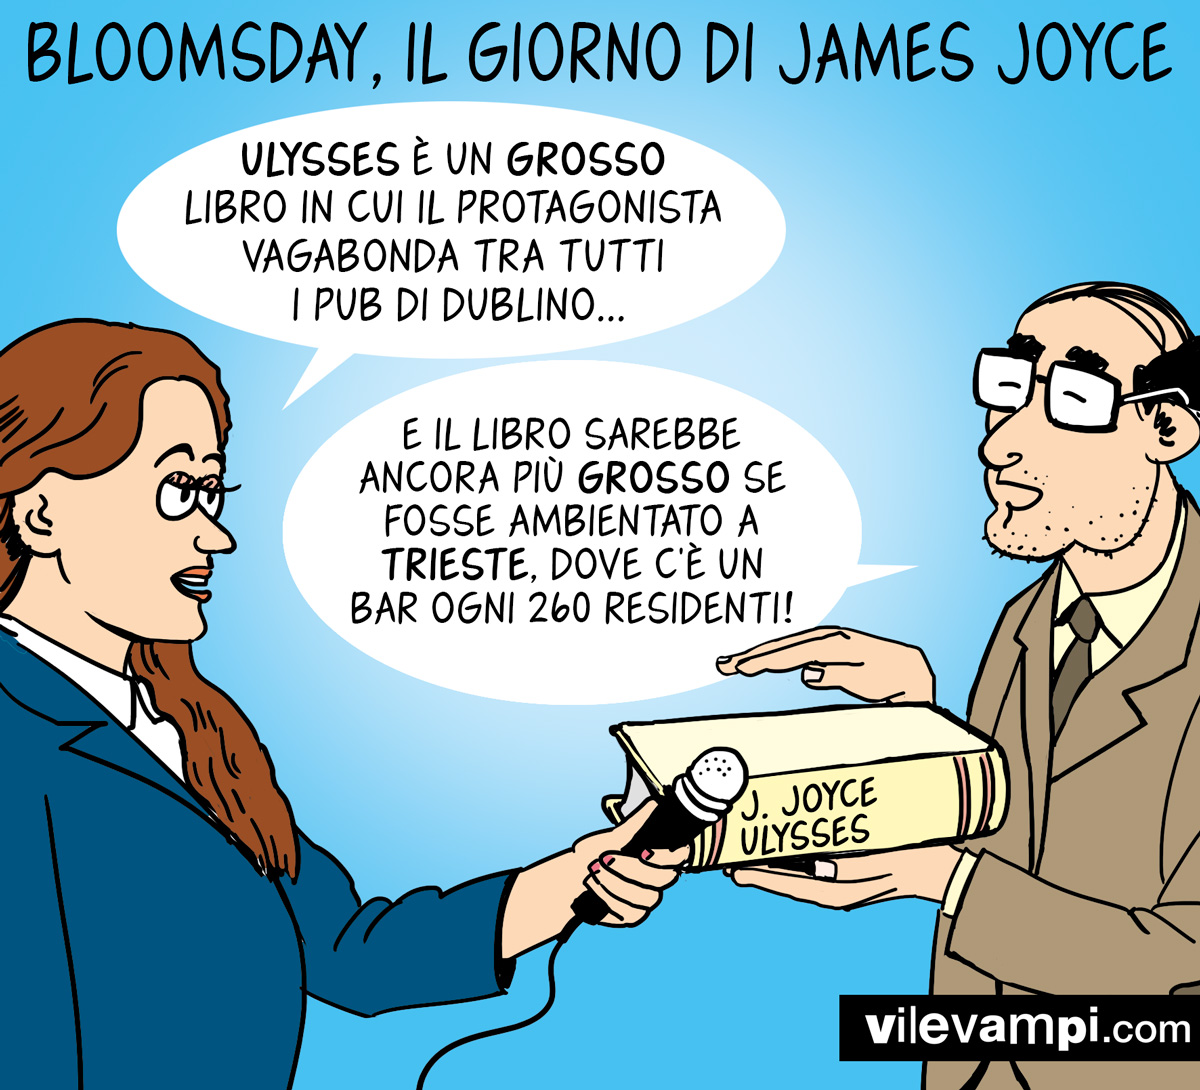 2021_Bloomsday